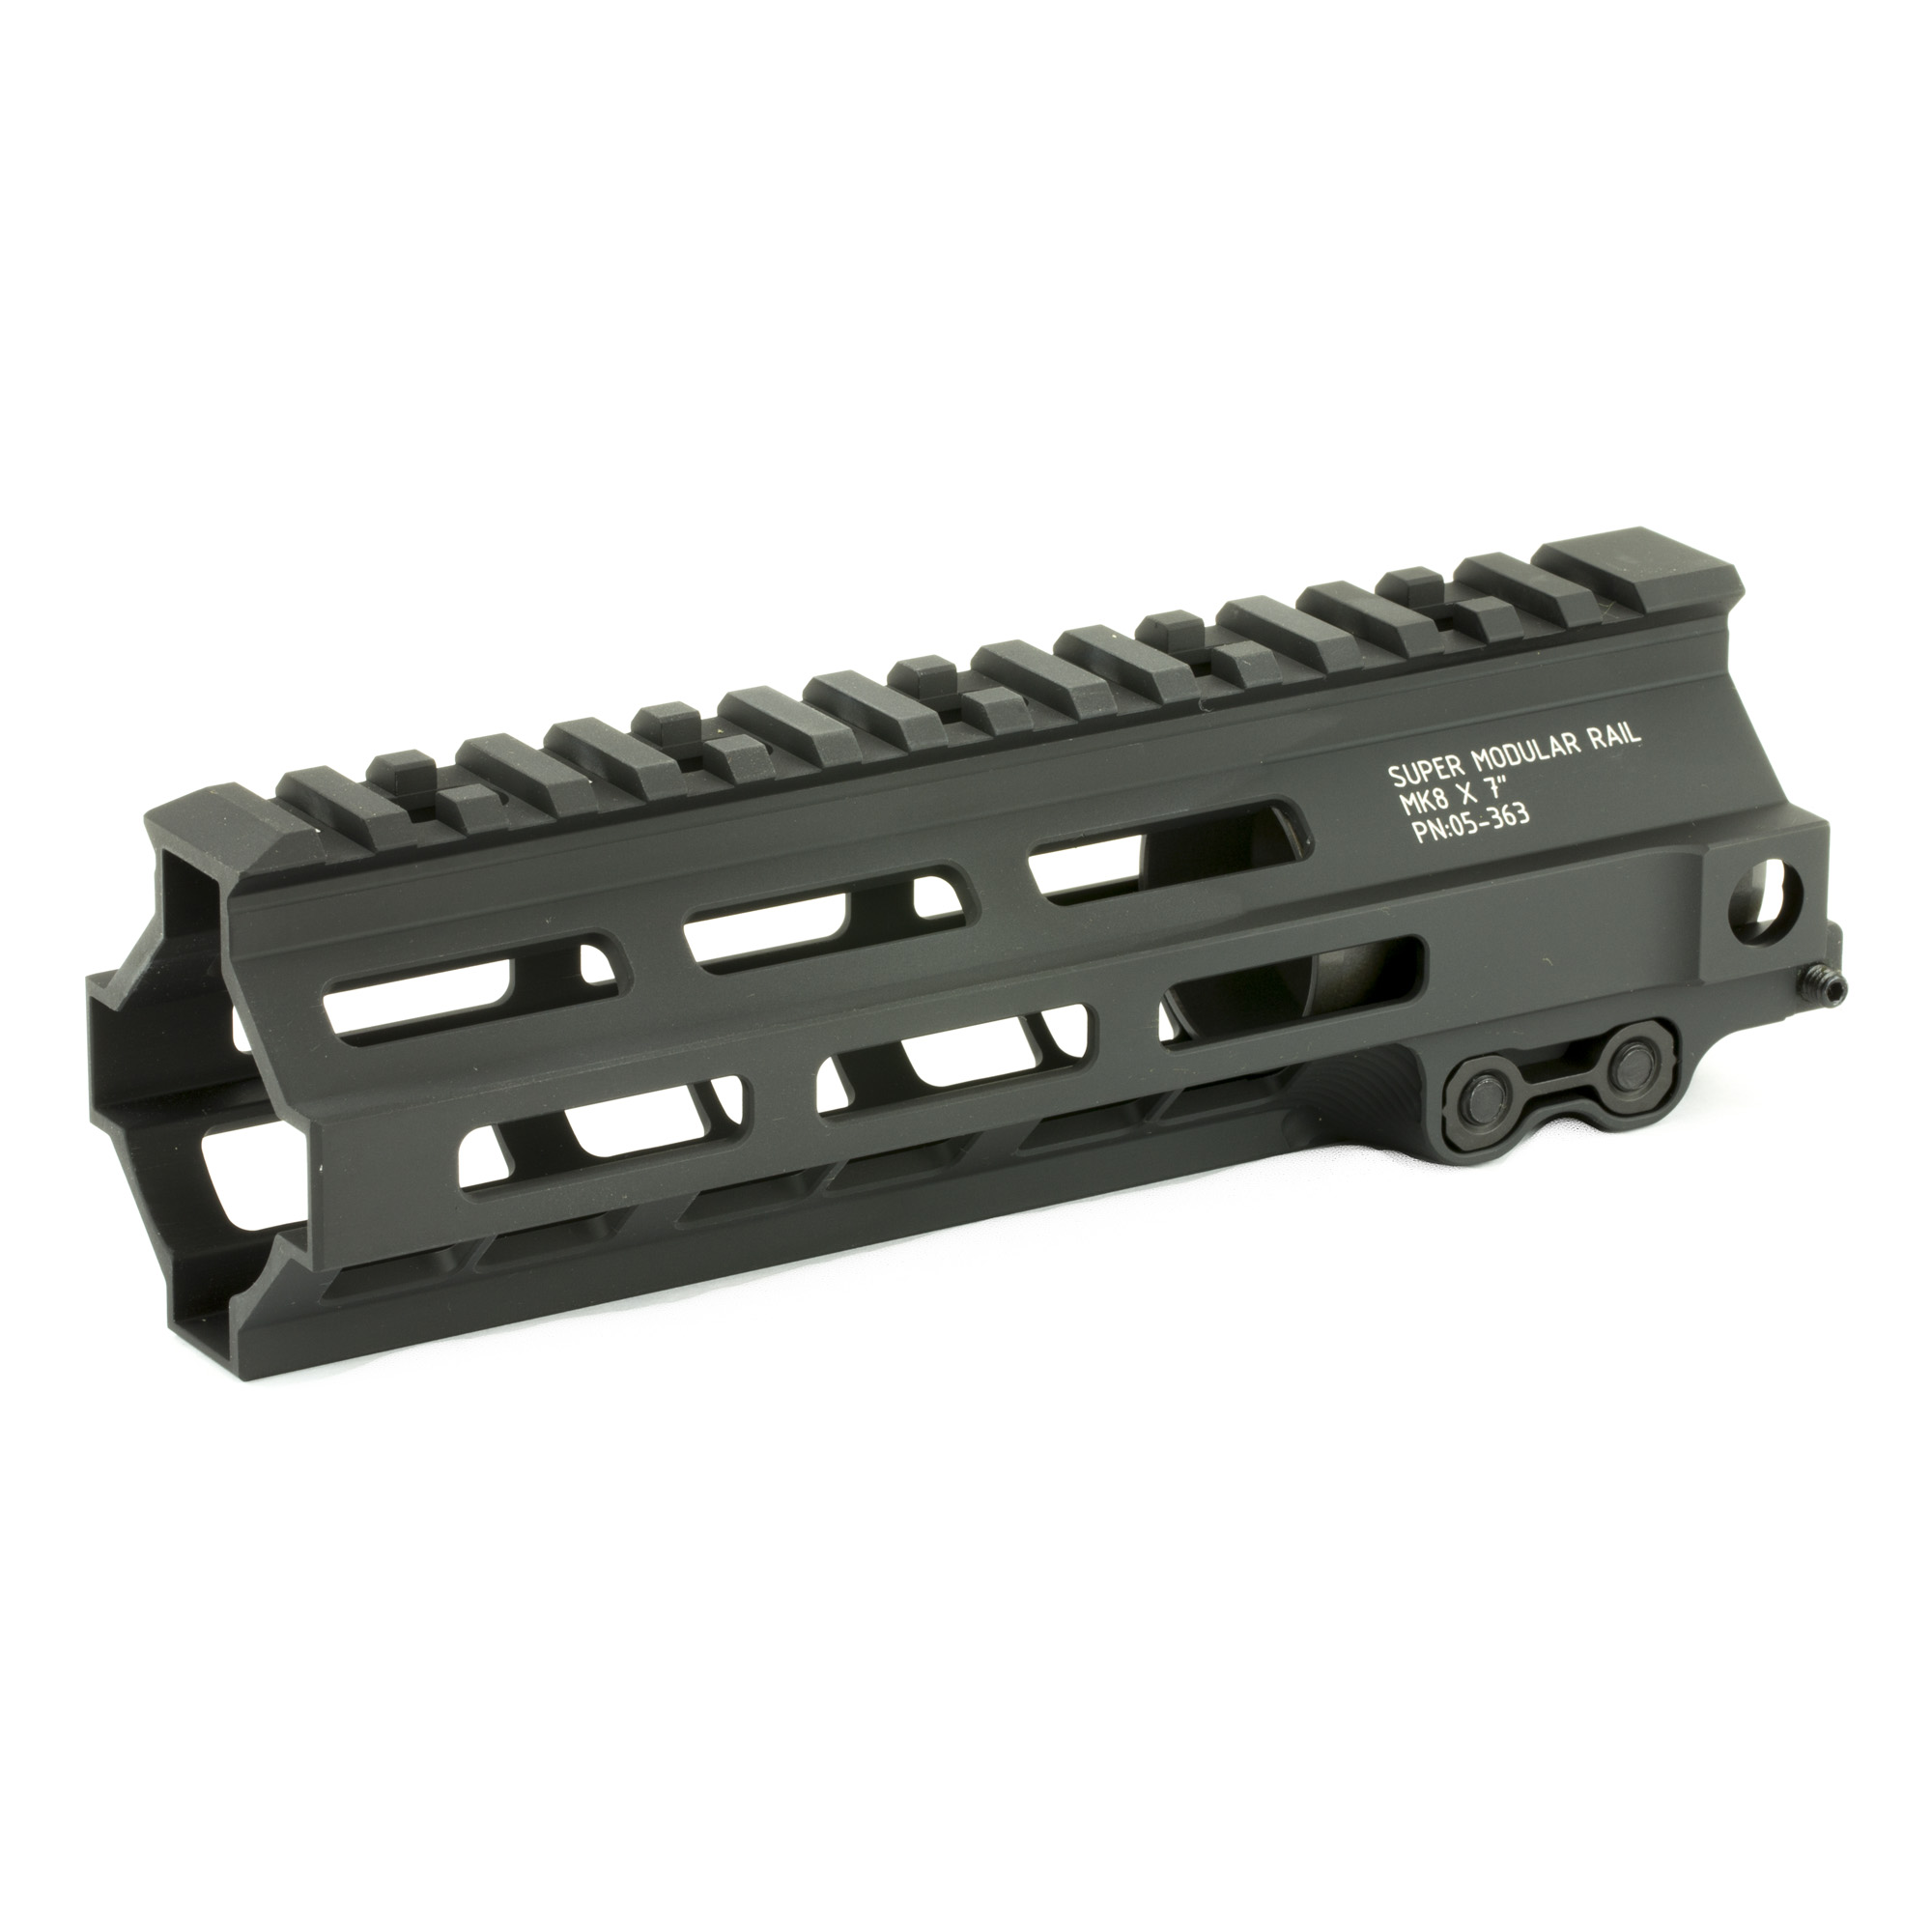 """The Super Modular 7"""" Rail (SMR) MK8 M-LOK(TM) is Geissele's ultra-modular model. The SMR MK8 is one of the first rails available to utilize the Magpul M-LOK technology. These rails are designed to give the user full modularity while maintaining a strong and rigid platform. Maximum venting at the lower 45 degree quadrants create maximum heat dissipation and also dramatically reduces the rail's overall weight. Utilizing Magpul's M-LOK technology at the 3"""" 6"""" and 9 o'clock positions"""" as well as the upper 45 degree quadrants. The SMR MK8 is both versatile and modular"""" allowing the user to tailor their platform to his or her unique needs. The SMR MK8 also features Geissele's proprietary 2.25"""" long barrel nut. This increases the surface contact where the rail interfaces with the receiver and creates a platform that can be trusted to be straight and true the entire length of the free float rail. This increases accuracy and zero repeatability during disassembly and reassembly when performing maintenance."""